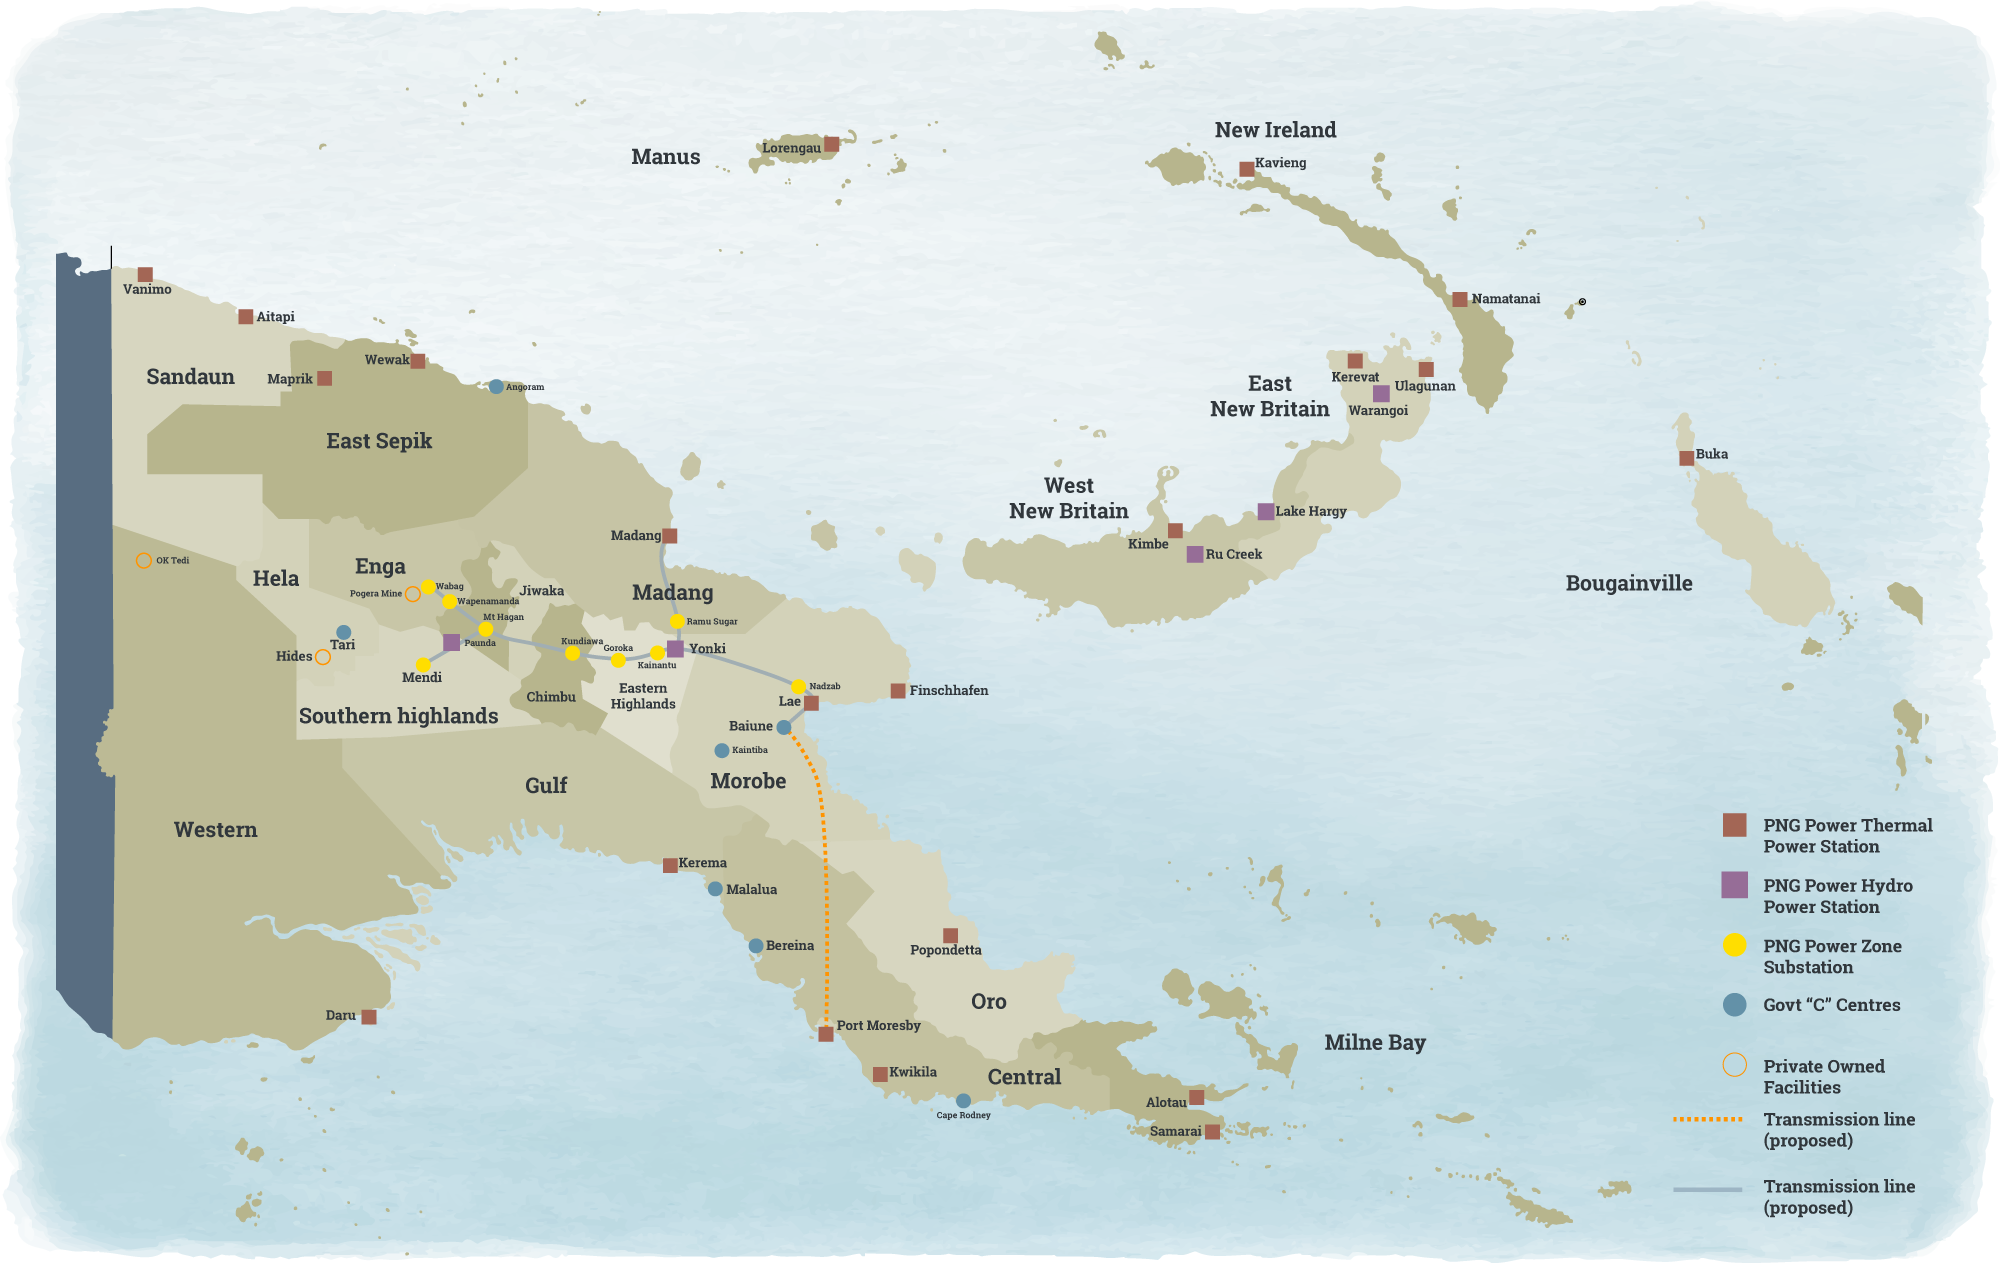 Putting Papua New Guinea on the map